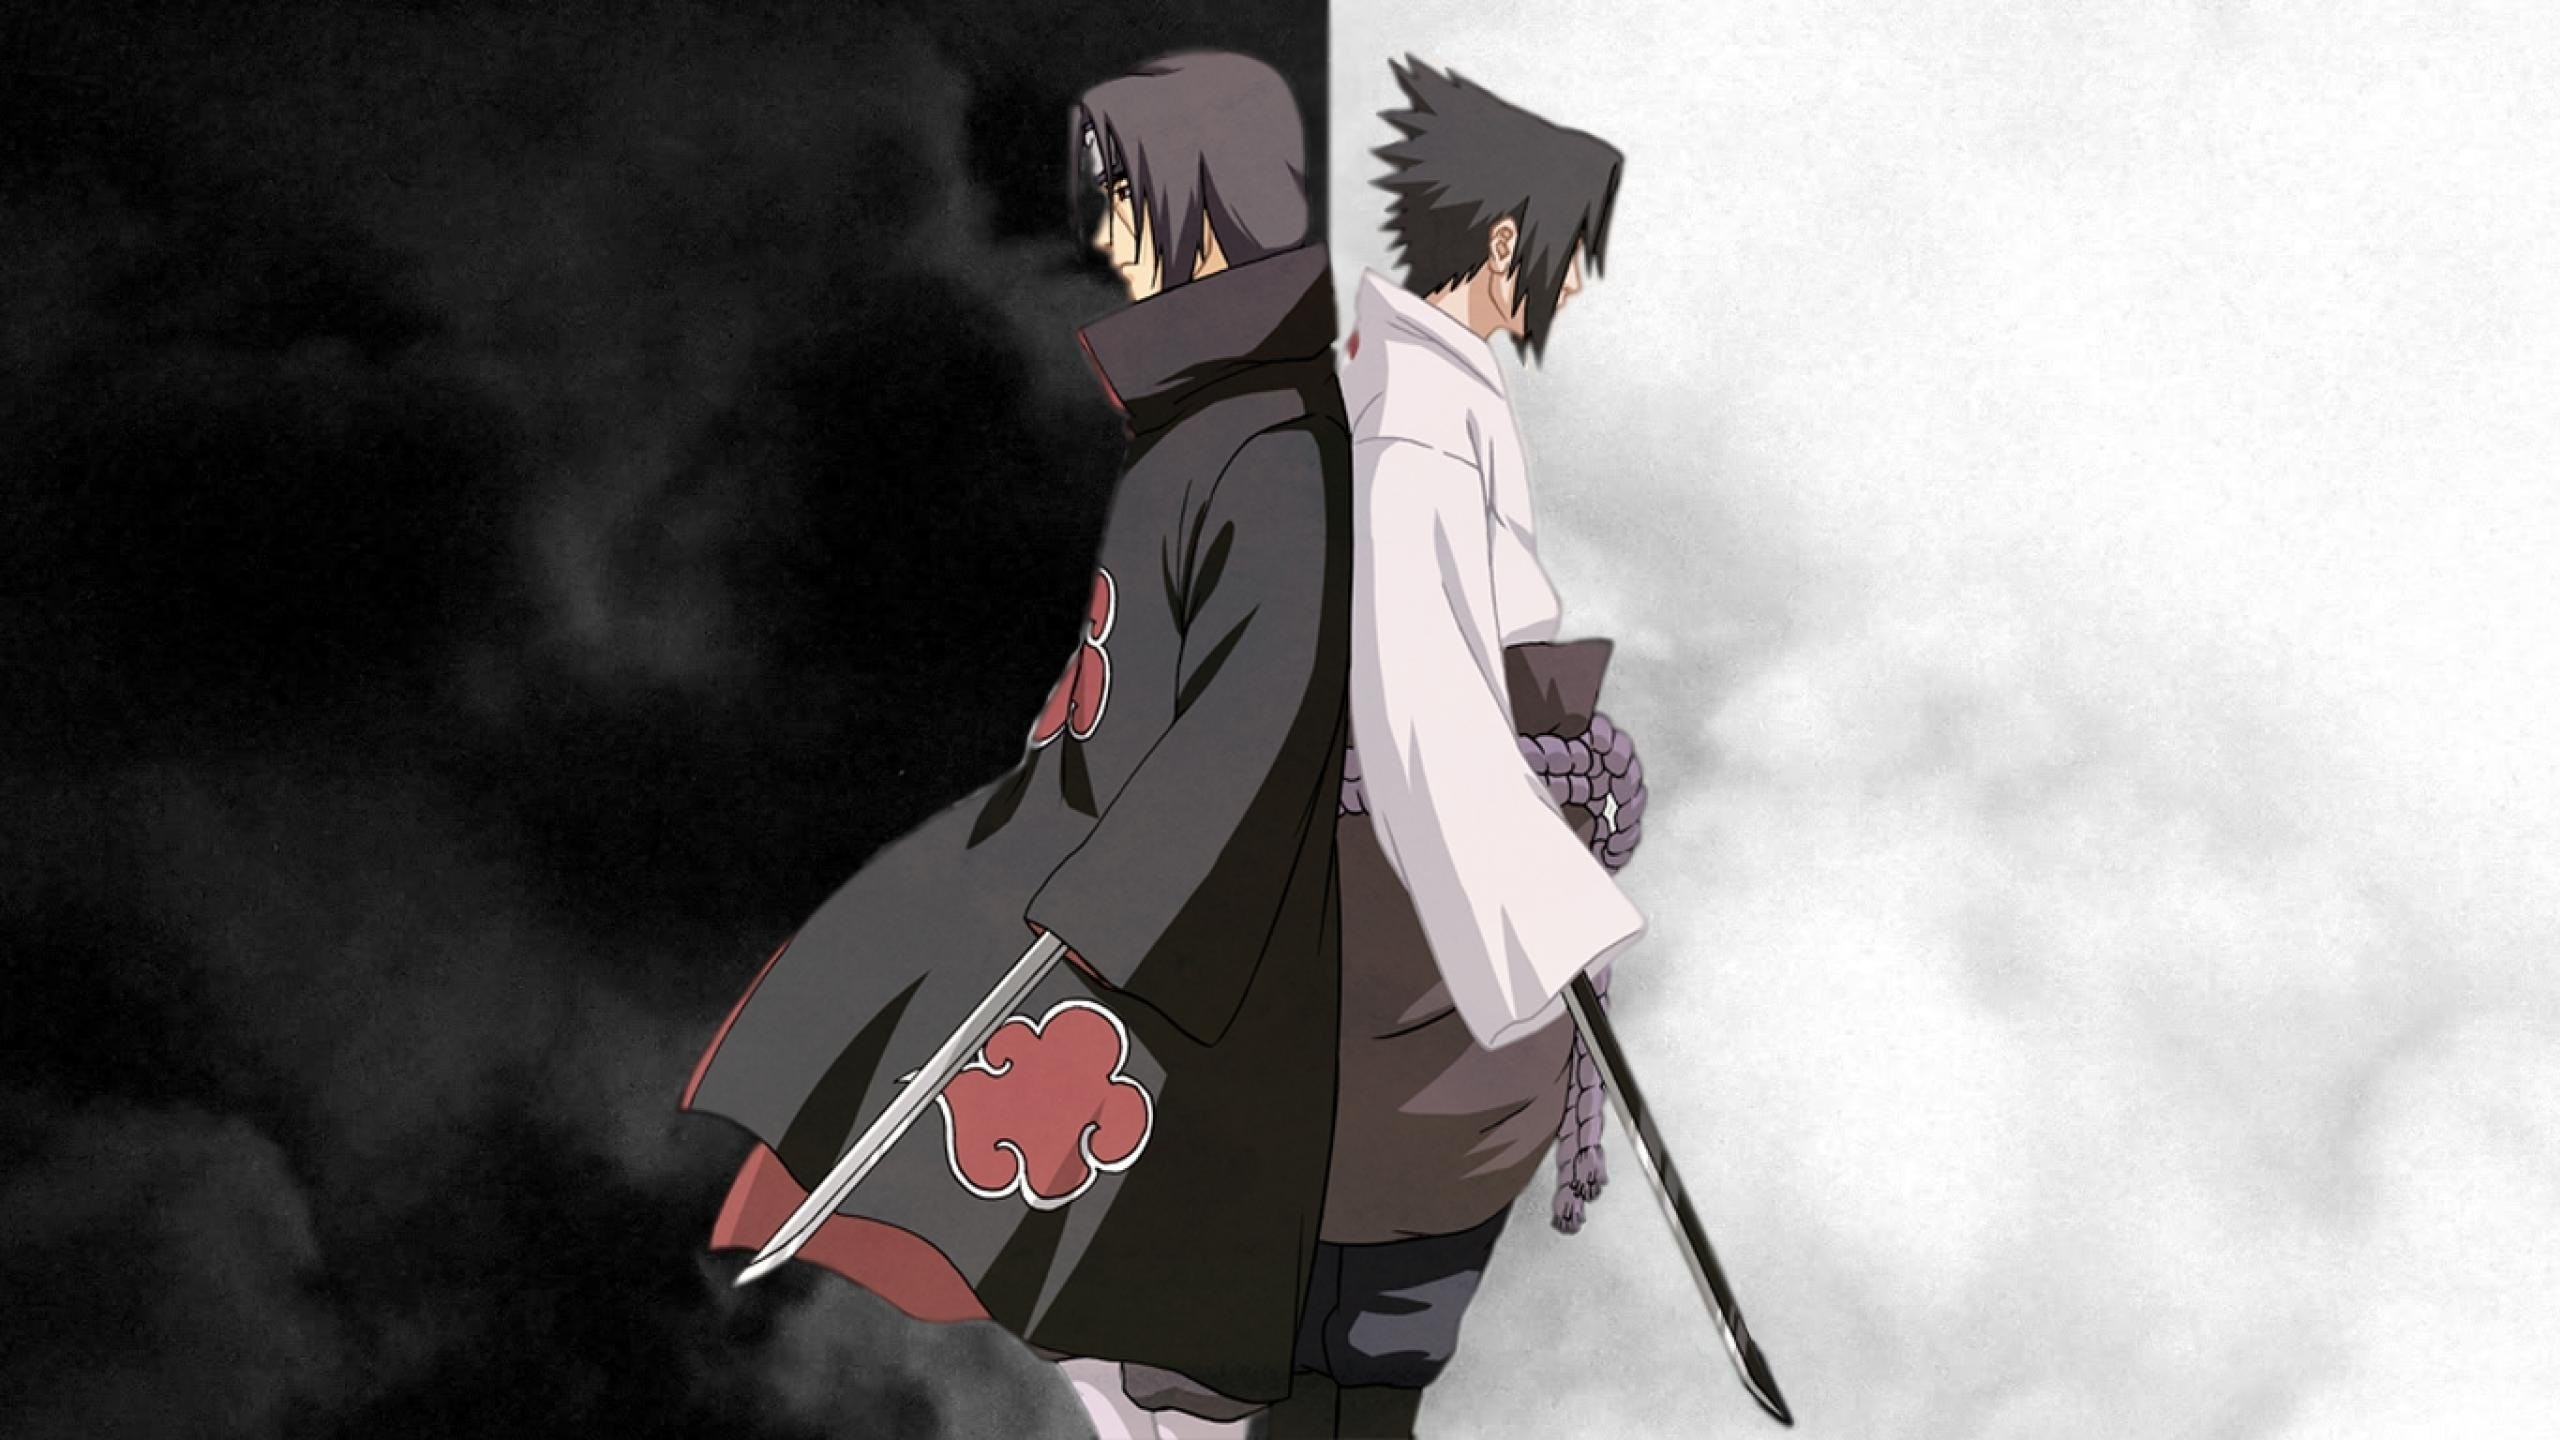 sasuke et itachi wallpaper hd 62+ - xshyfc